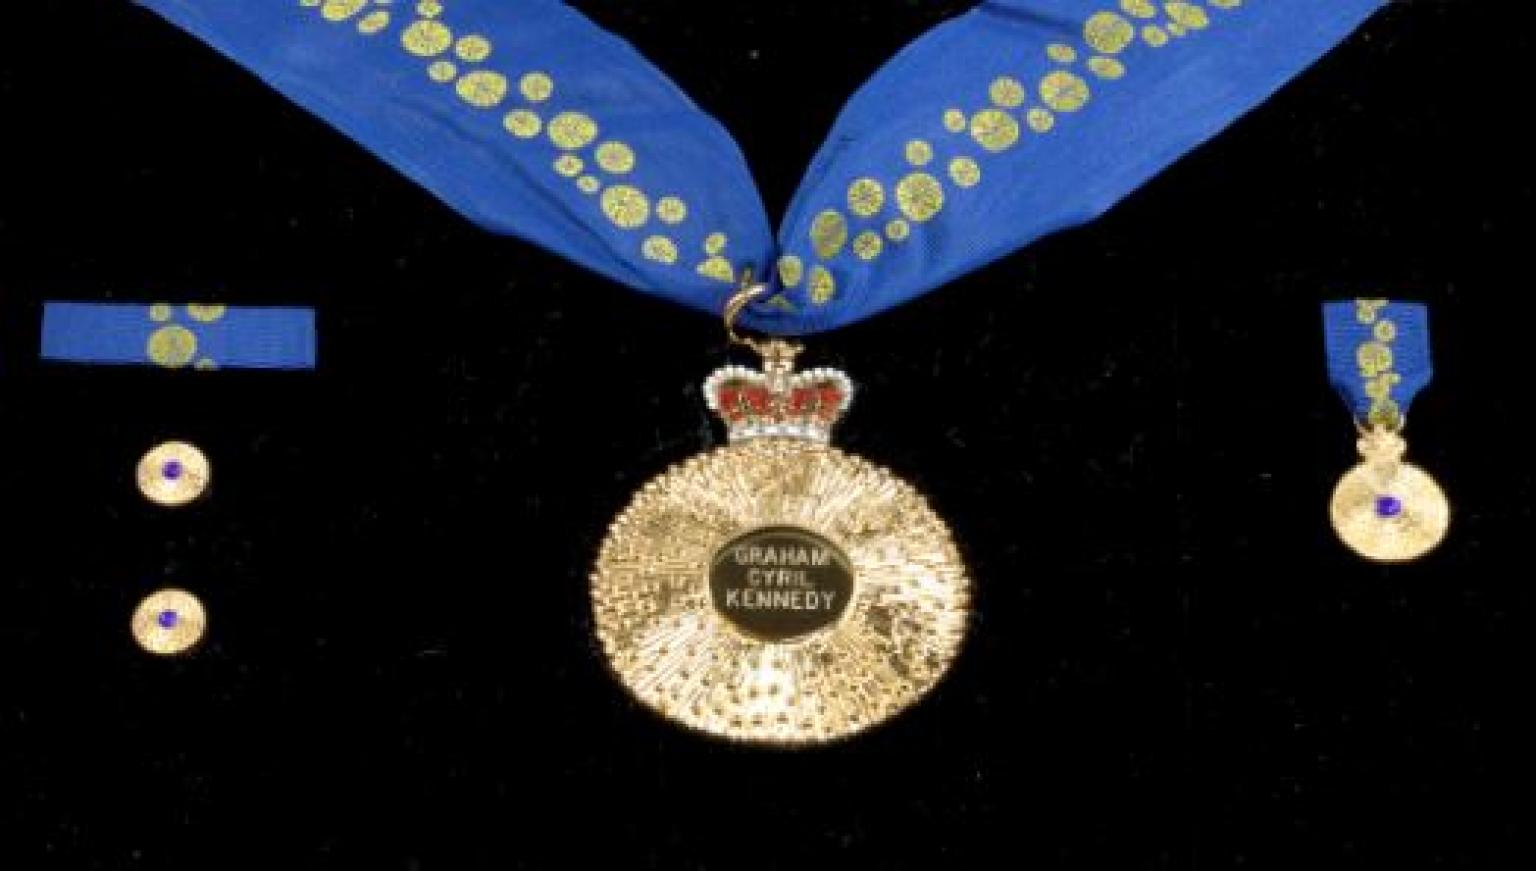 Graham Kennedy's Order of Australia